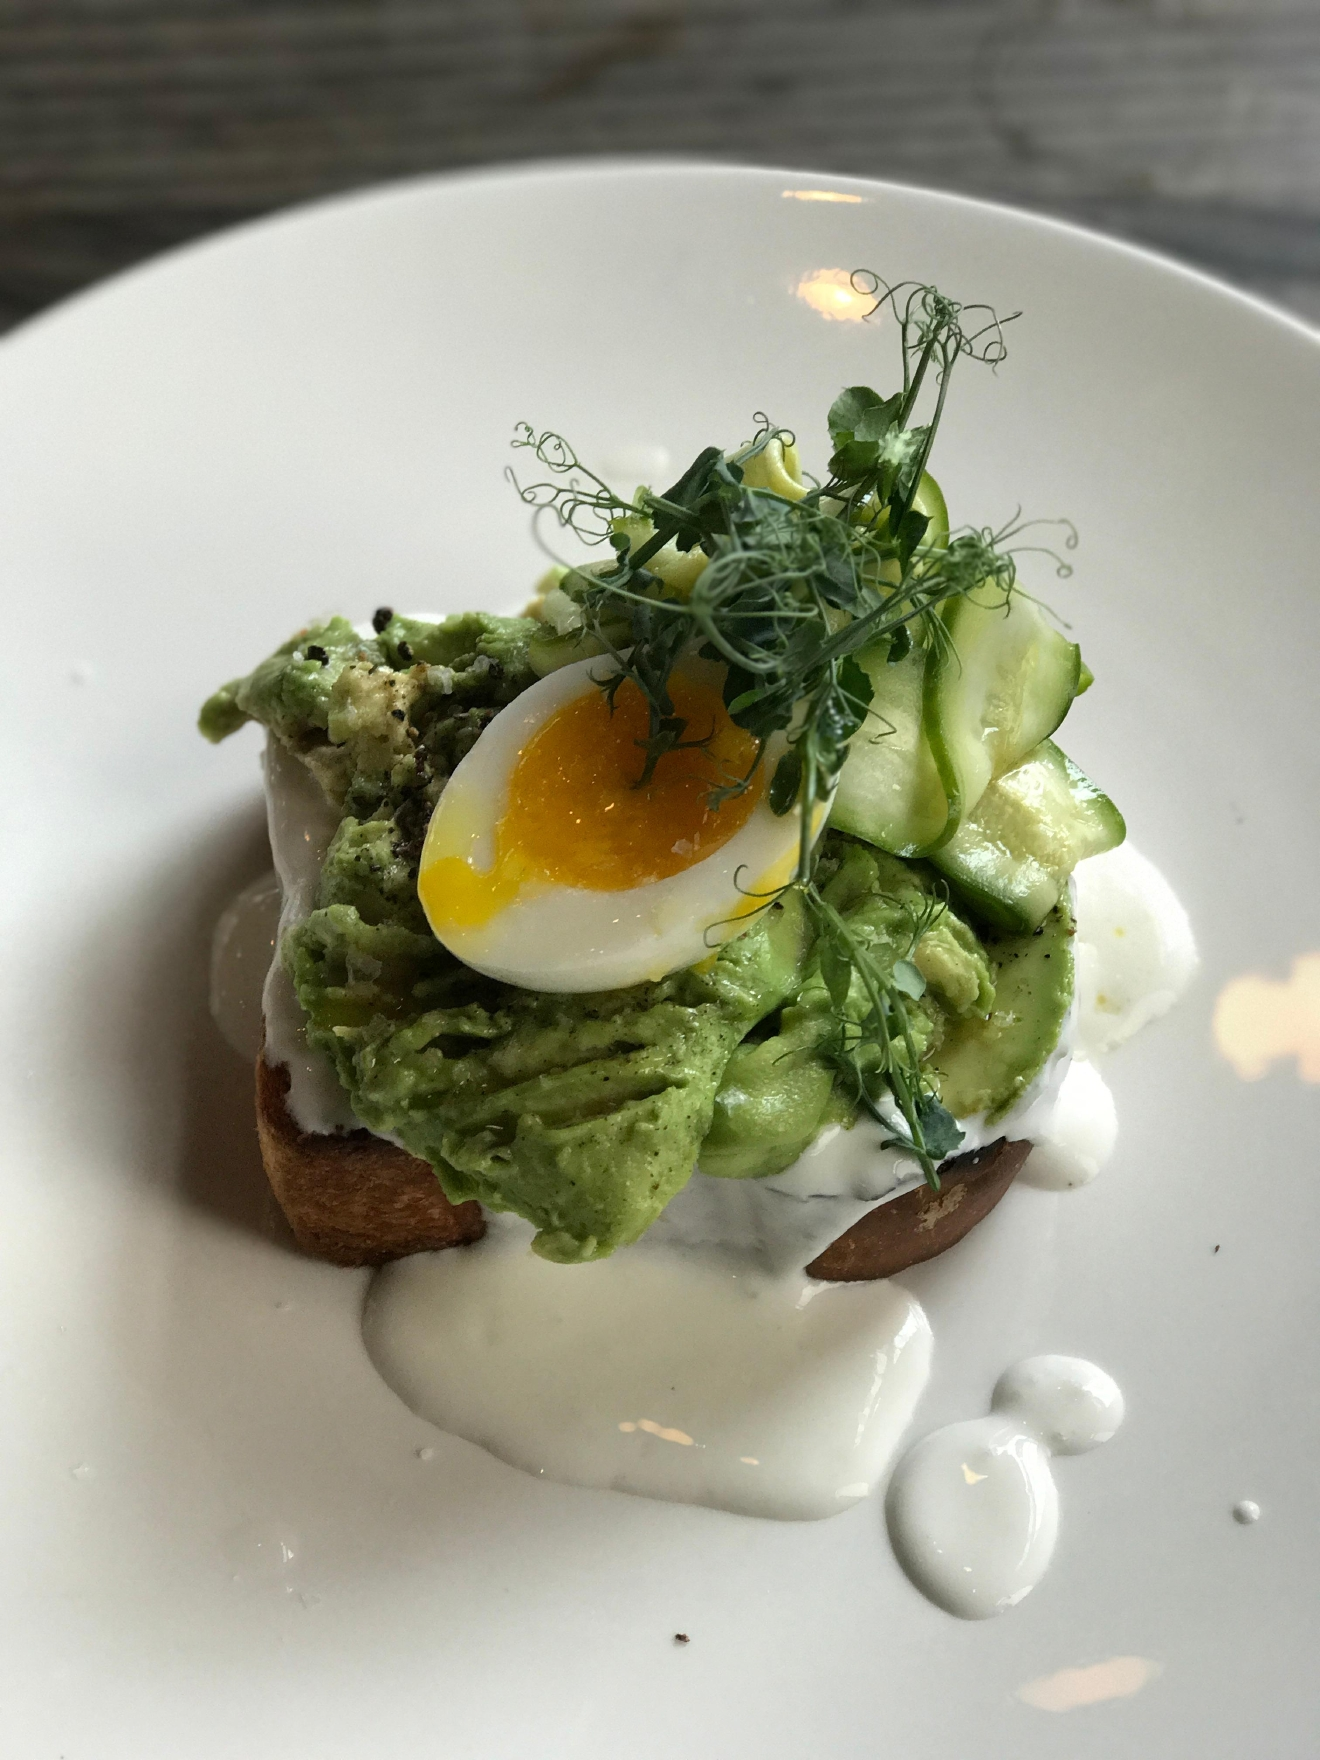 Avocado Toast from the Pearl Tavern, topped with a 6 minute egg.  Super yummy!                                           (Image: Kate Neidigh)